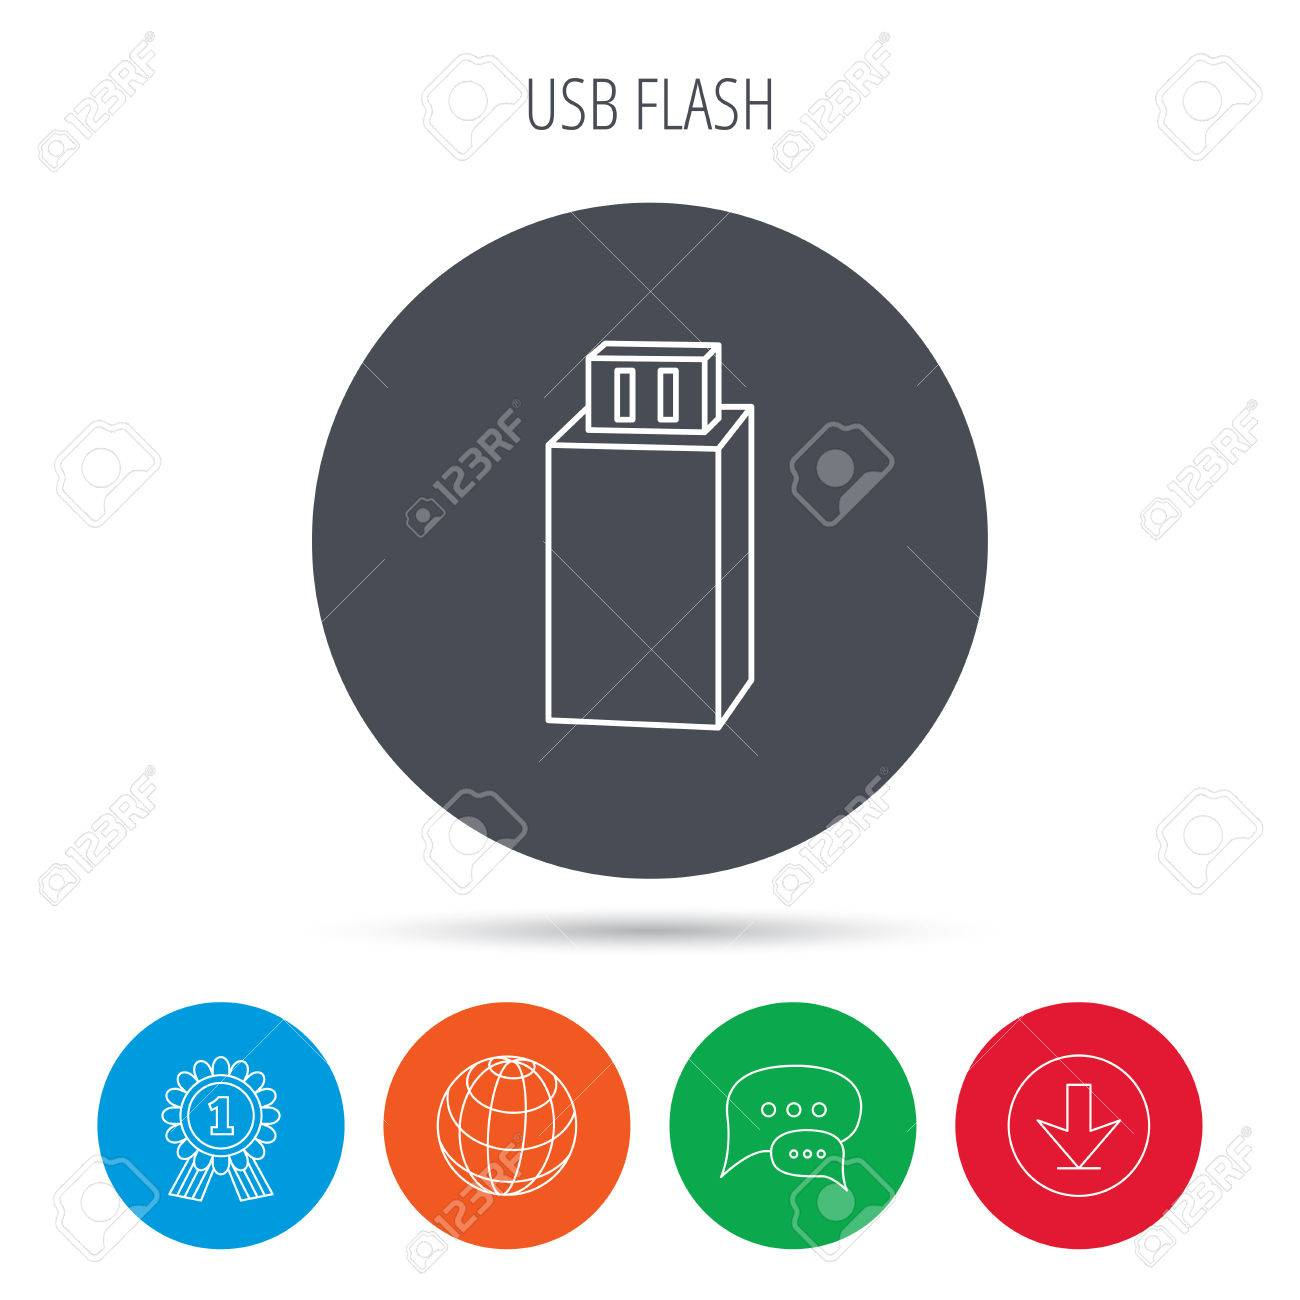 USB drive icon  Flash stick sign  Mobile data storage symbol